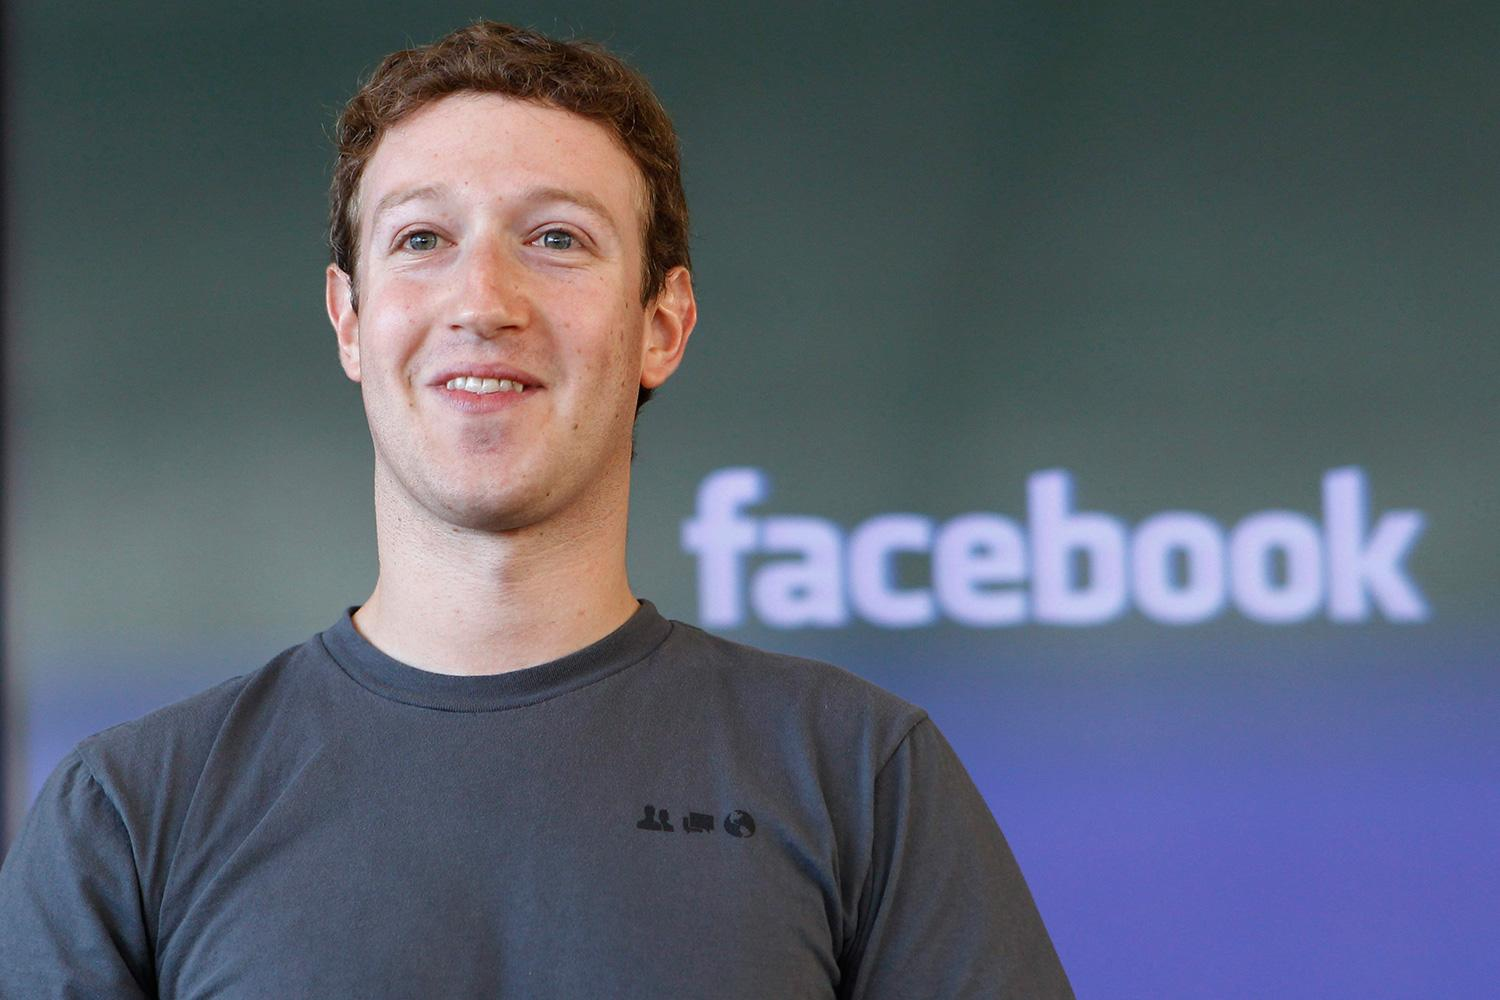 Facebook Releases Bad News For Businesses